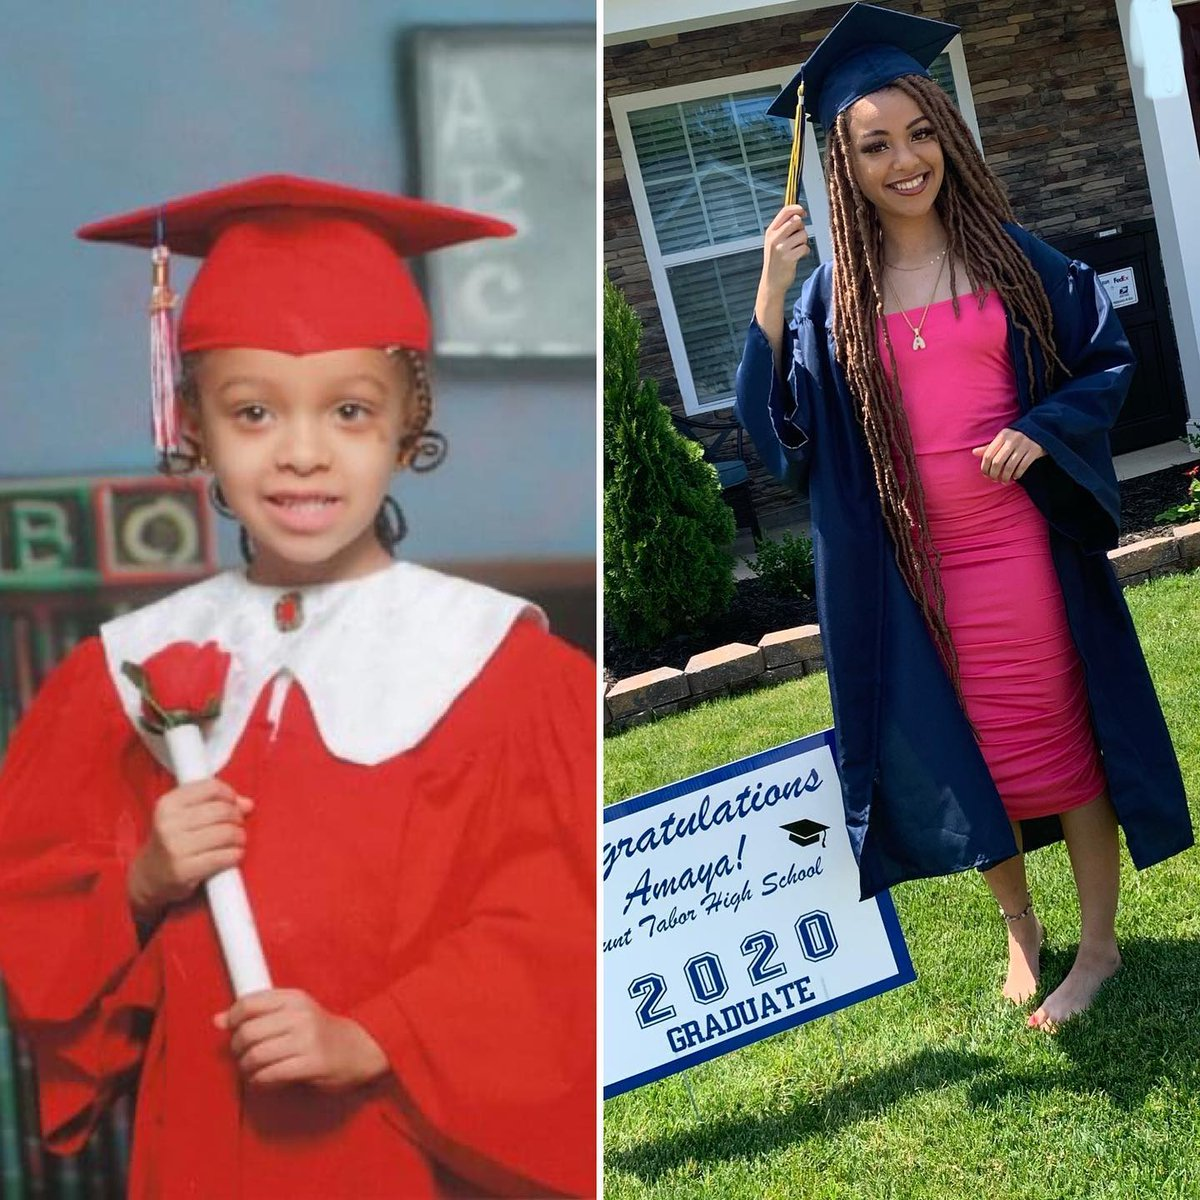 📷 by @michellej.mj: #shedidthat Pre-K to 12th 🎉Congrats to our baby girl amaya.jay our honor student, #classof2020 high school graduate. So proud, Keep shining tink tink! @wssu1892 #sheready #wssu24 #futurenurse https://t.co/NP98J6D4uV